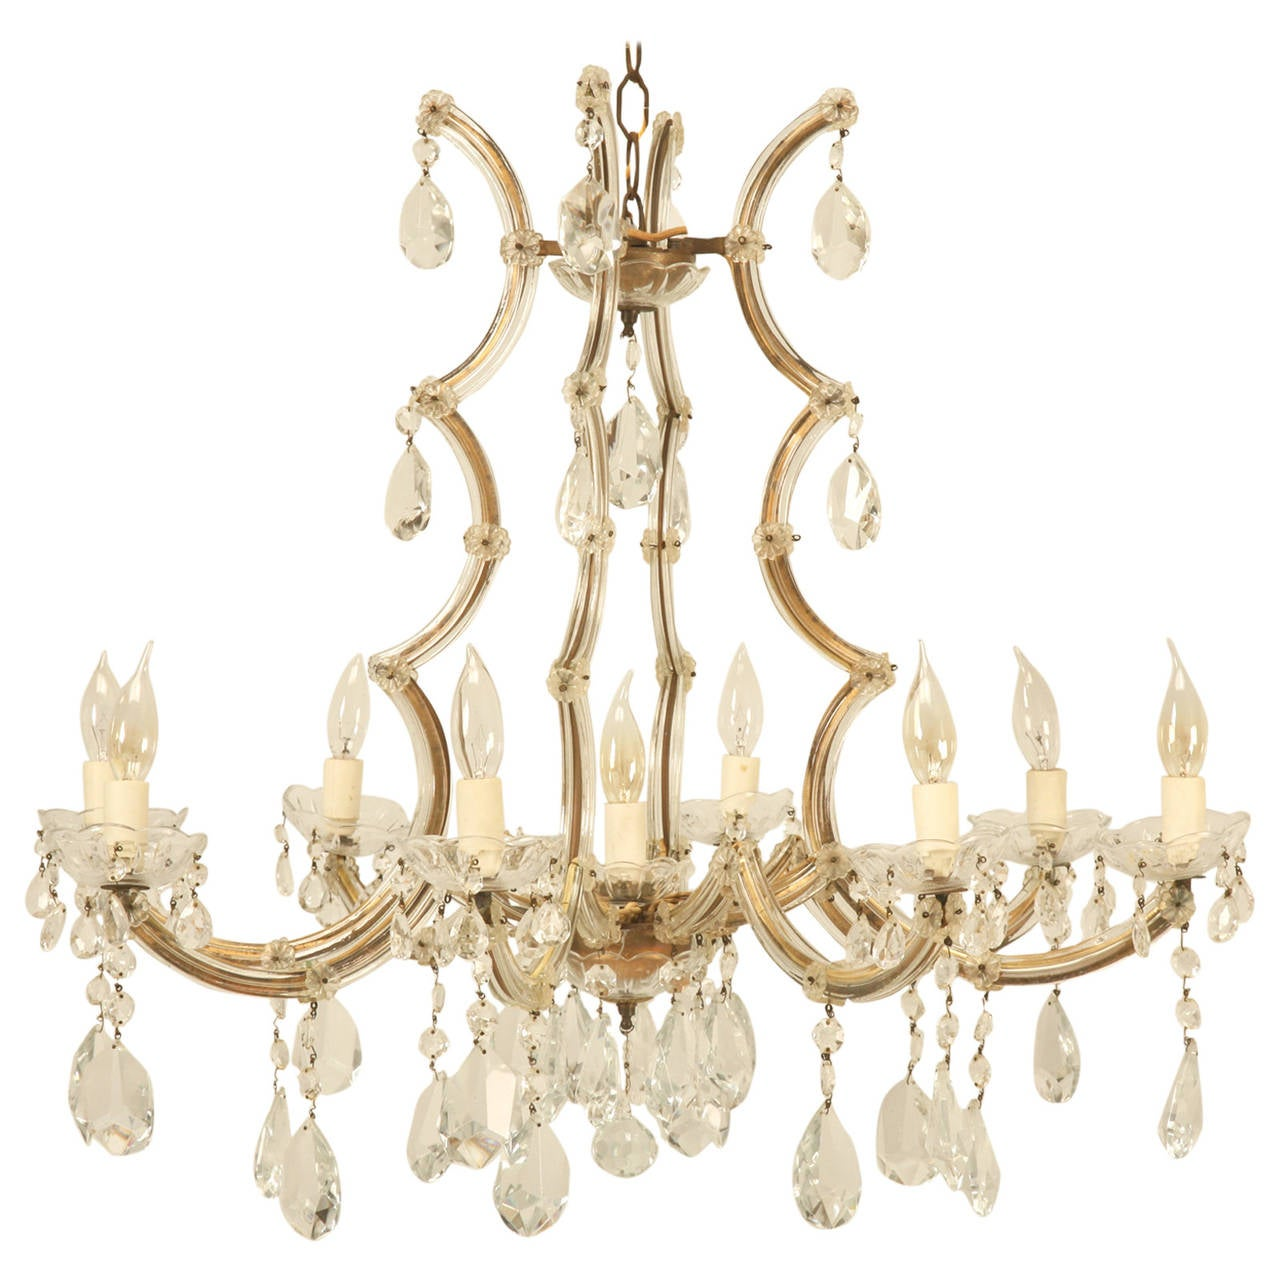 Spanish chandelier in a baroque style circa 1930s for sale at 1stdibs spanish chandelier in a baroque style circa 1930s for sale mozeypictures Gallery